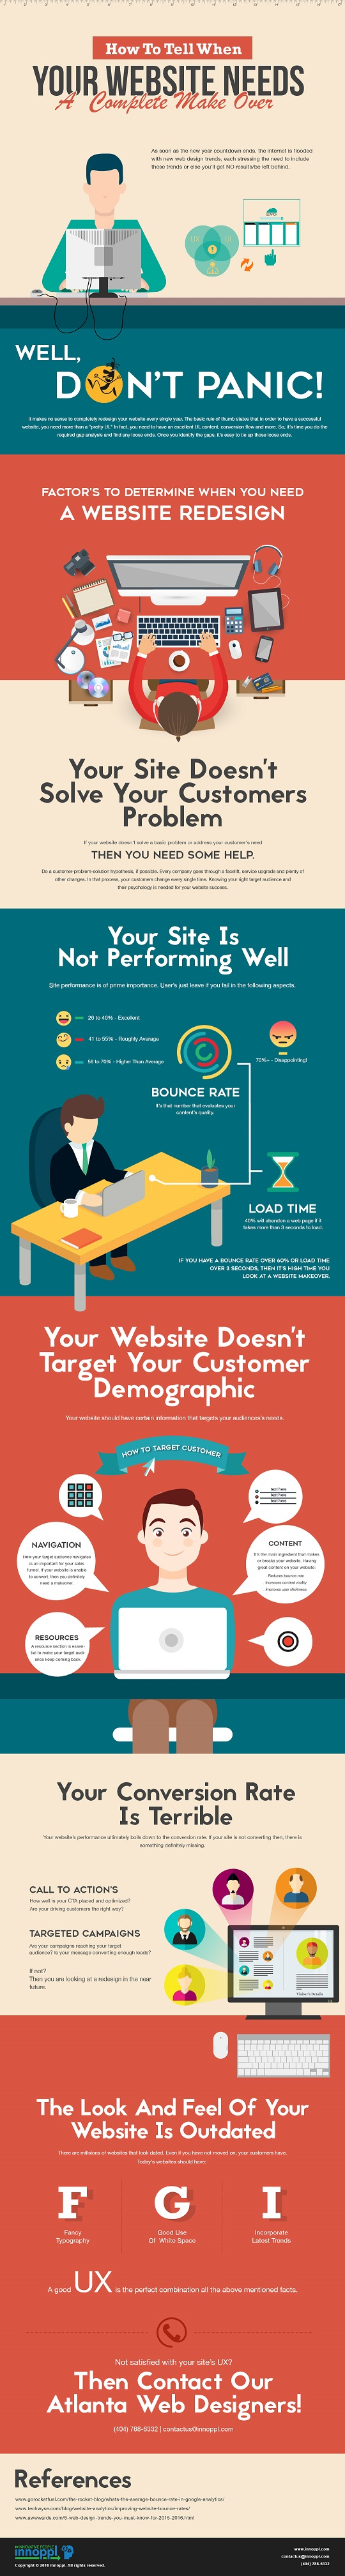 How to tell when your website needs a complete make over